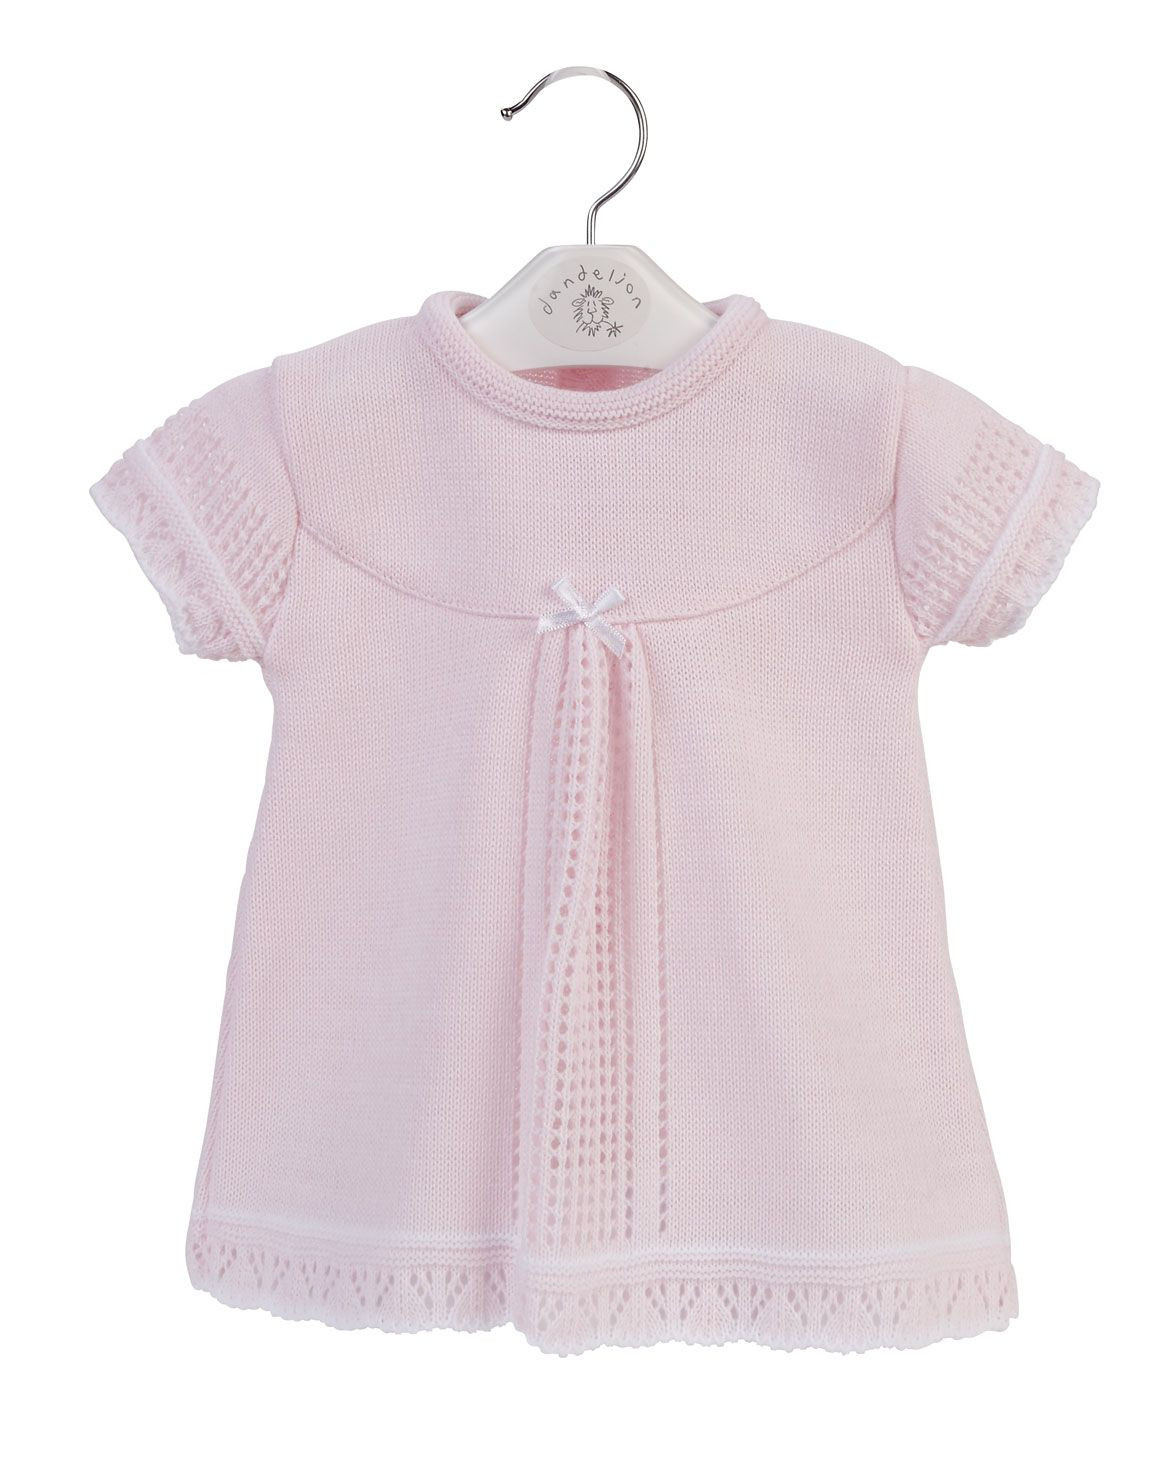 a2830 girls knitted baby dress 3658 p